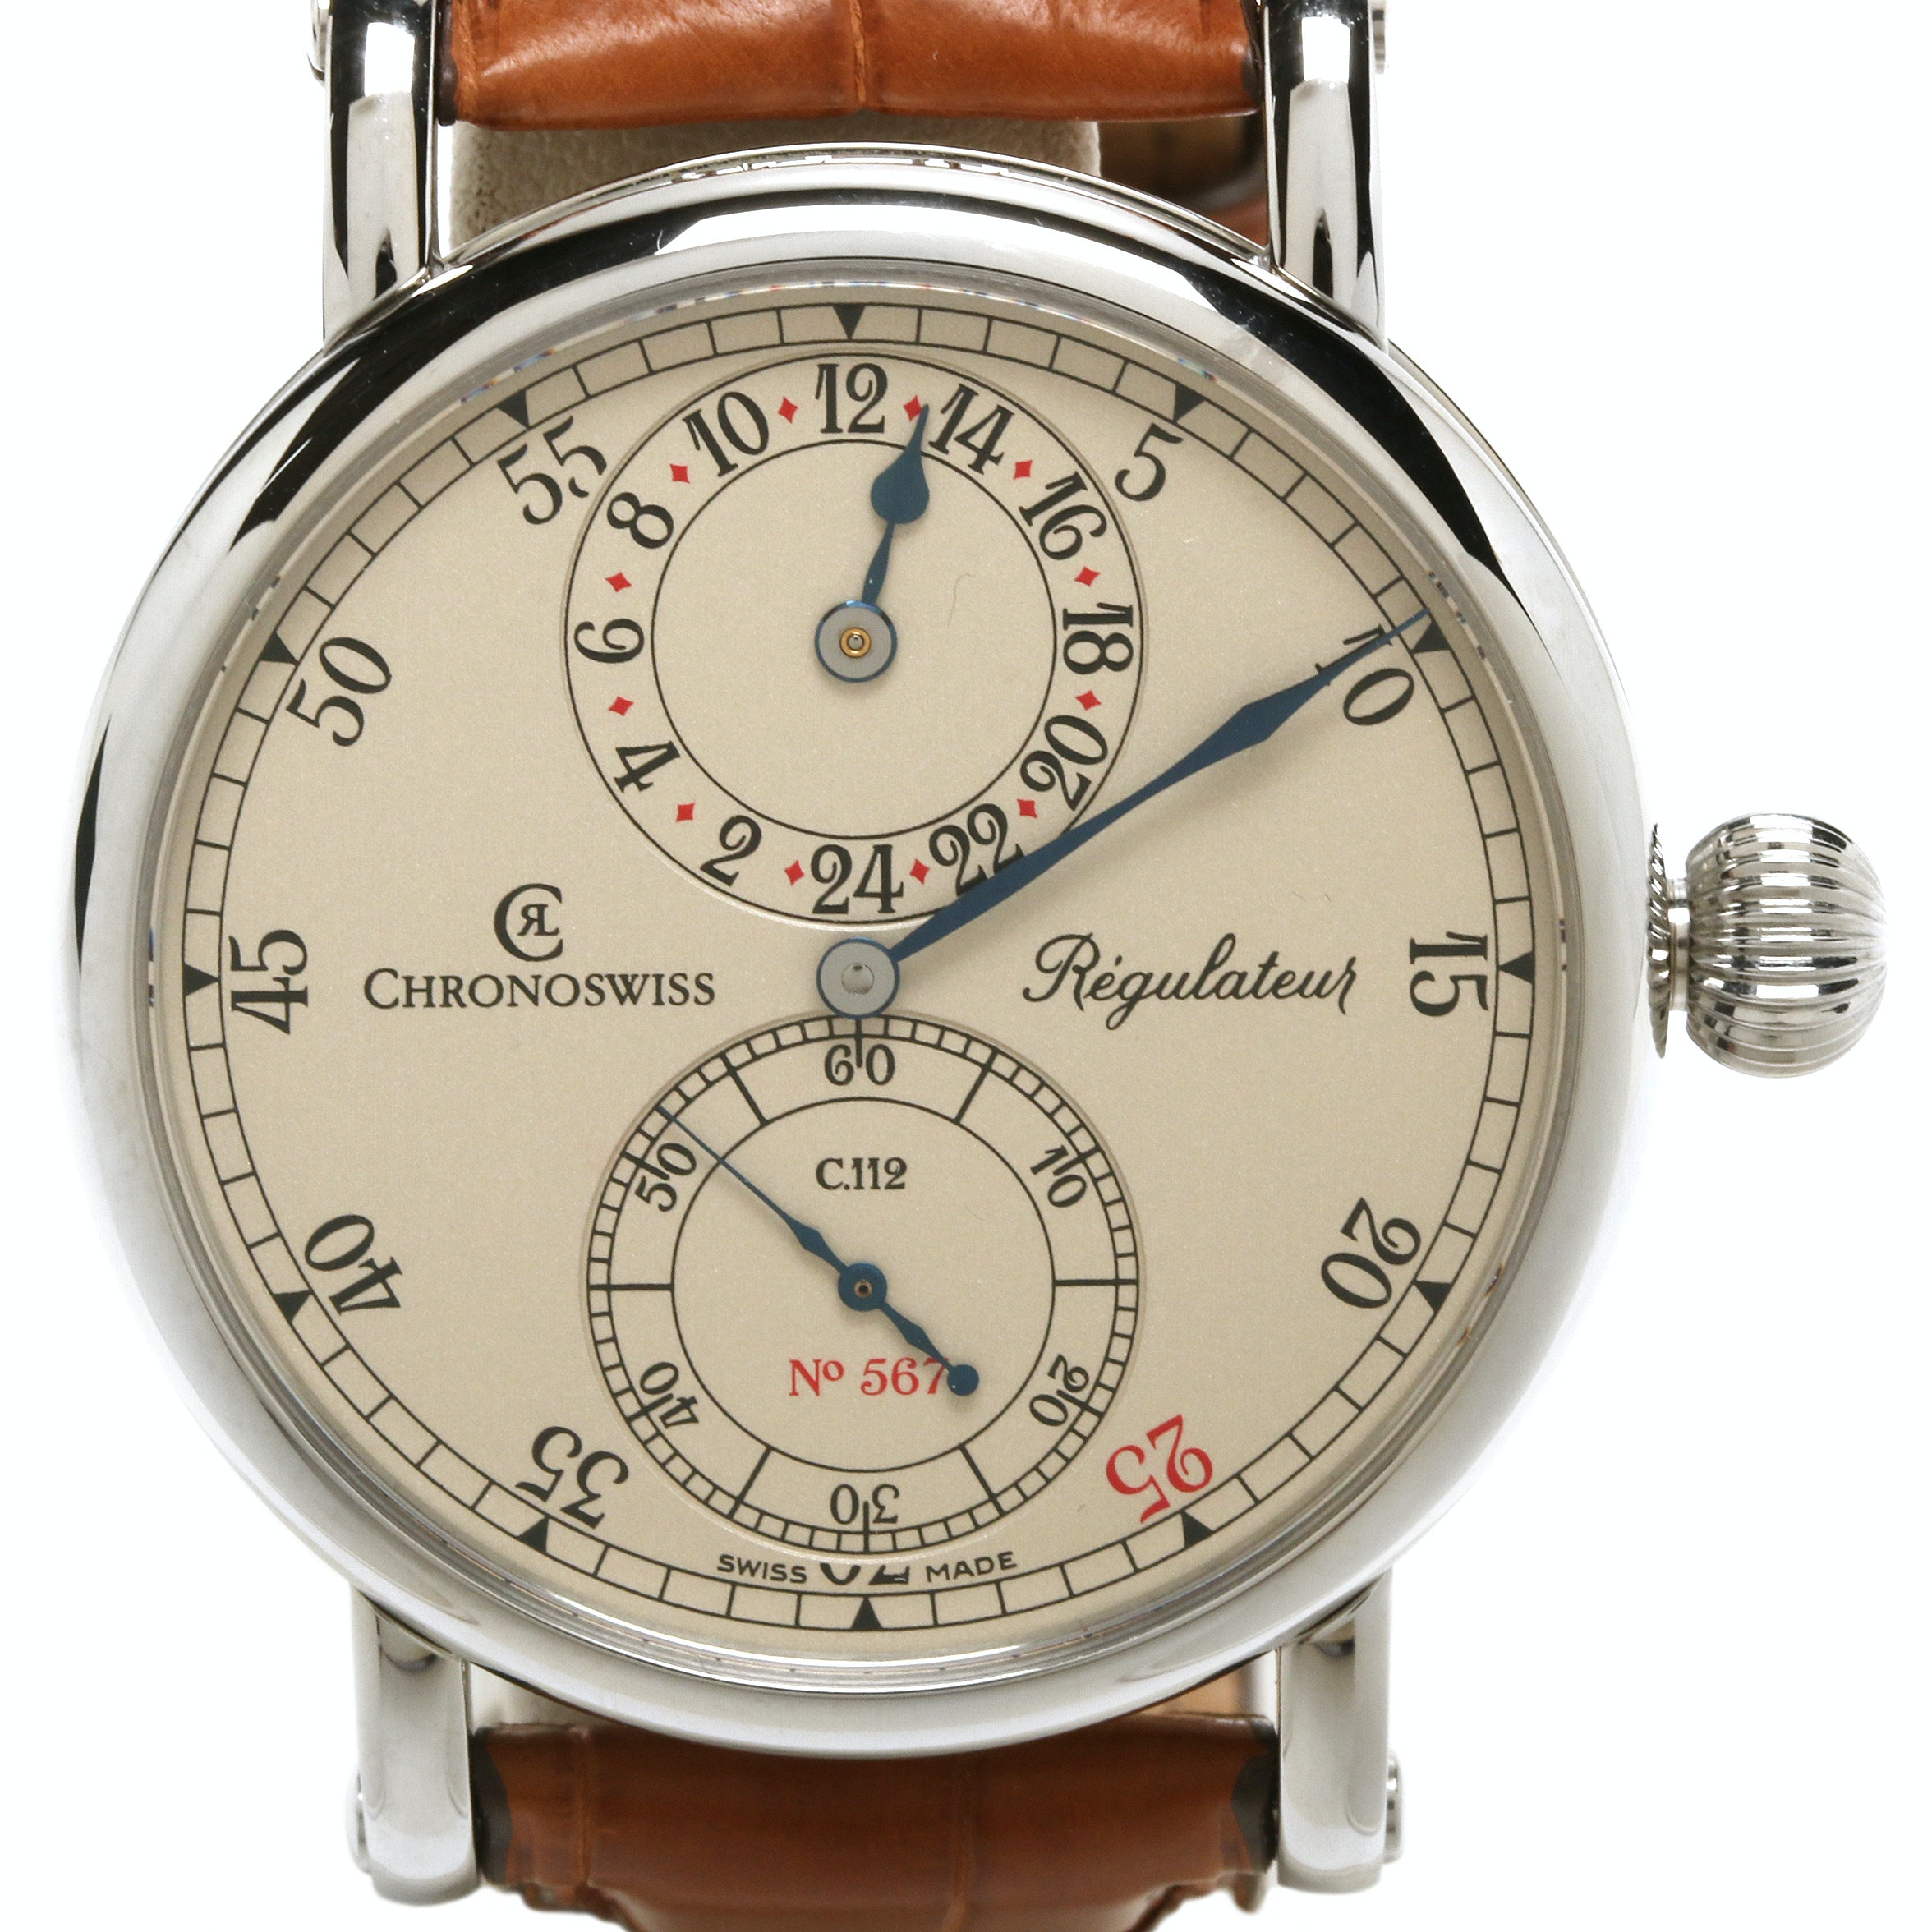 Chronoswiss Regulateur 24 Limited Edition Wristwatch With Commemorative Coin